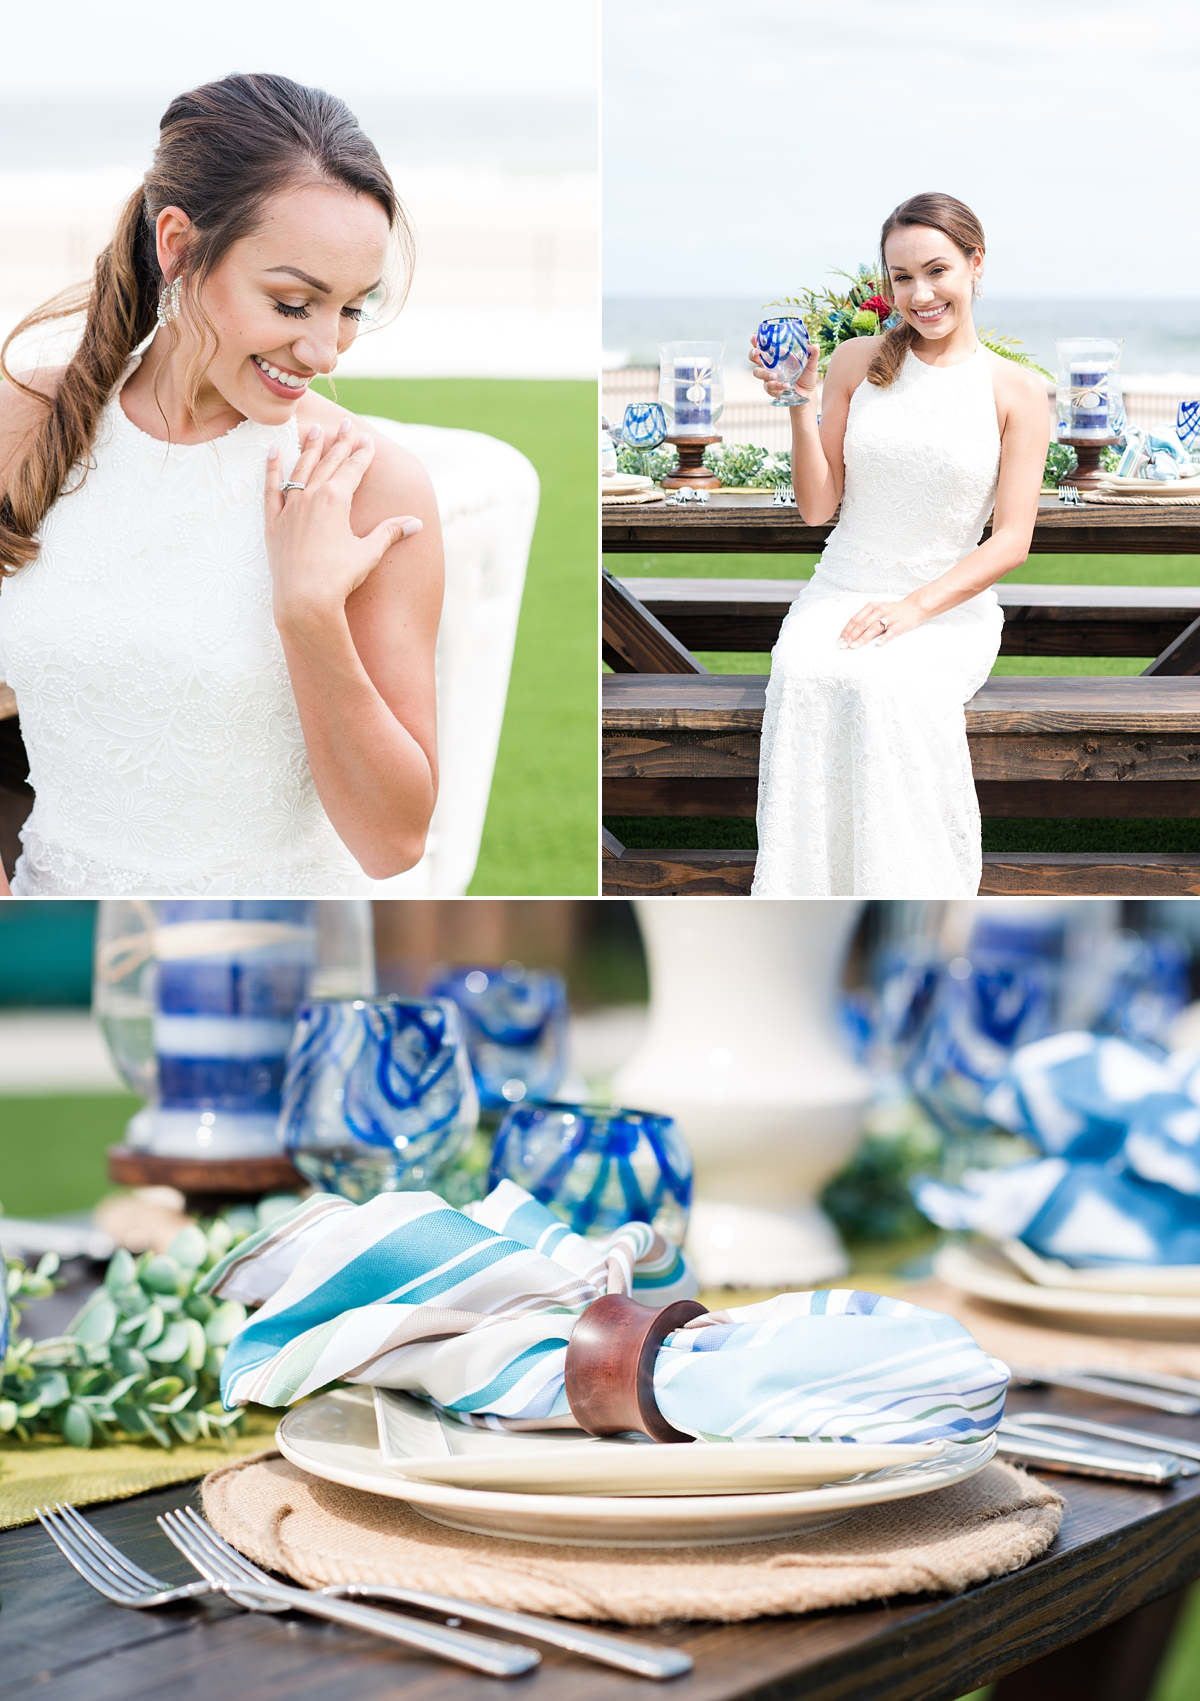 St Augustine Beach-Styled Wedding Session-Wedding Tables-Wedding Decor Inspiration-Summer Wedding-Wedding Dress Inspiration-2.jpg